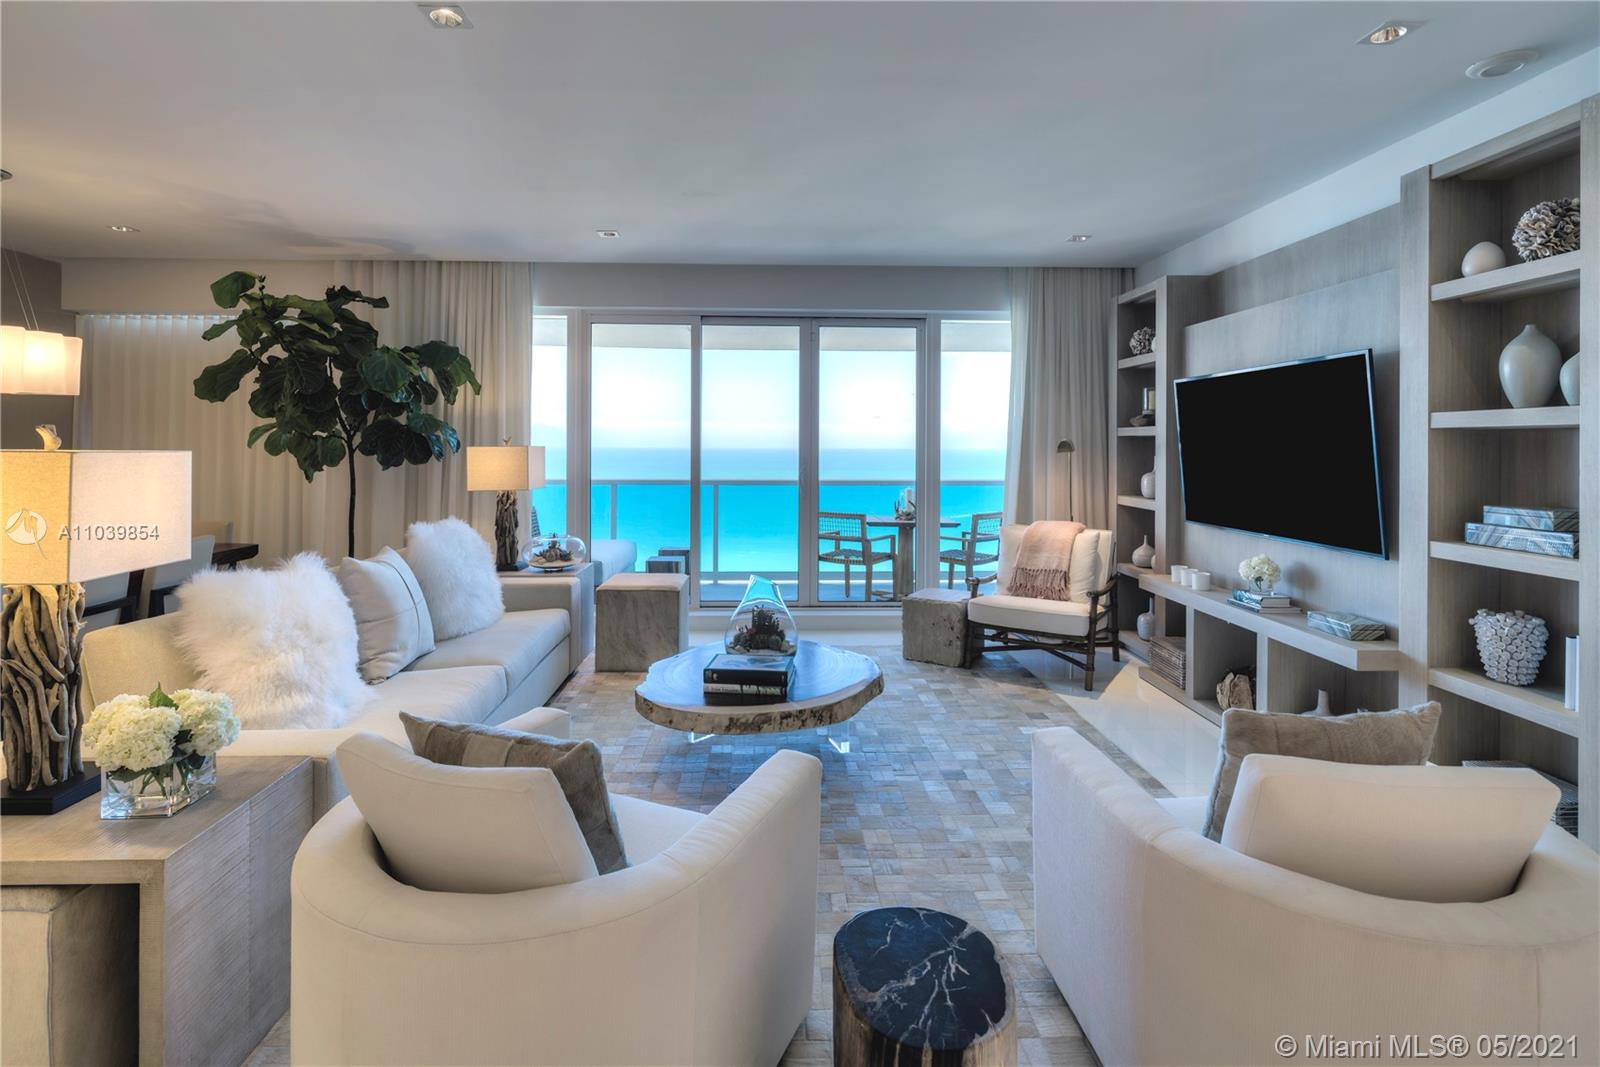 A true penthouse at the luxurious 1 Hotel & Homes South Beach.  All rooms are located on the top 17th floor, the highest floor that overlooks all other condos in the building. No one above looking down affording maximum privacy on this penthouses multiple balconies.  All rooms with panoramic direct ocean views through large floor-to-ceiling windows.  Gracious 4 bed/4.5 bath layout with large beautiful master and junior master suites, magnificently furnished by Brazilian designer Debora Aguiar with custom lighting & bathroom enclosures and exquisite Glassos large floor tiles throughout. Experience luxury hotel living with extravagant 5-star white glove services, personal concierge, chauffeured Teslas, 14,000 Sg. Ft. Gym, Bamford Spa, - a truly opulent Miami Beach oasis.